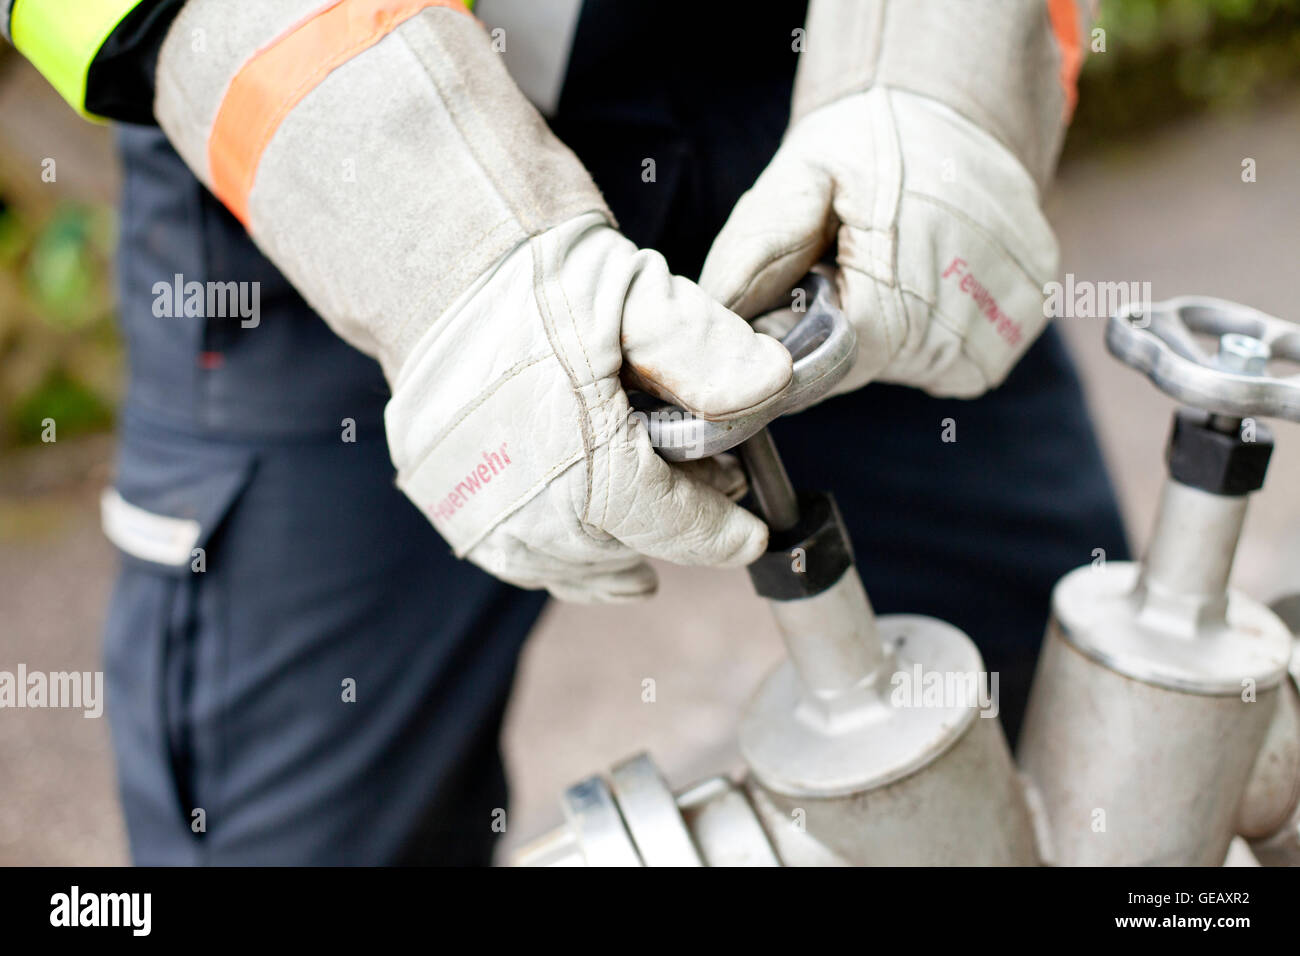 Close-up of firefighter opening fire hydrant - Stock Image